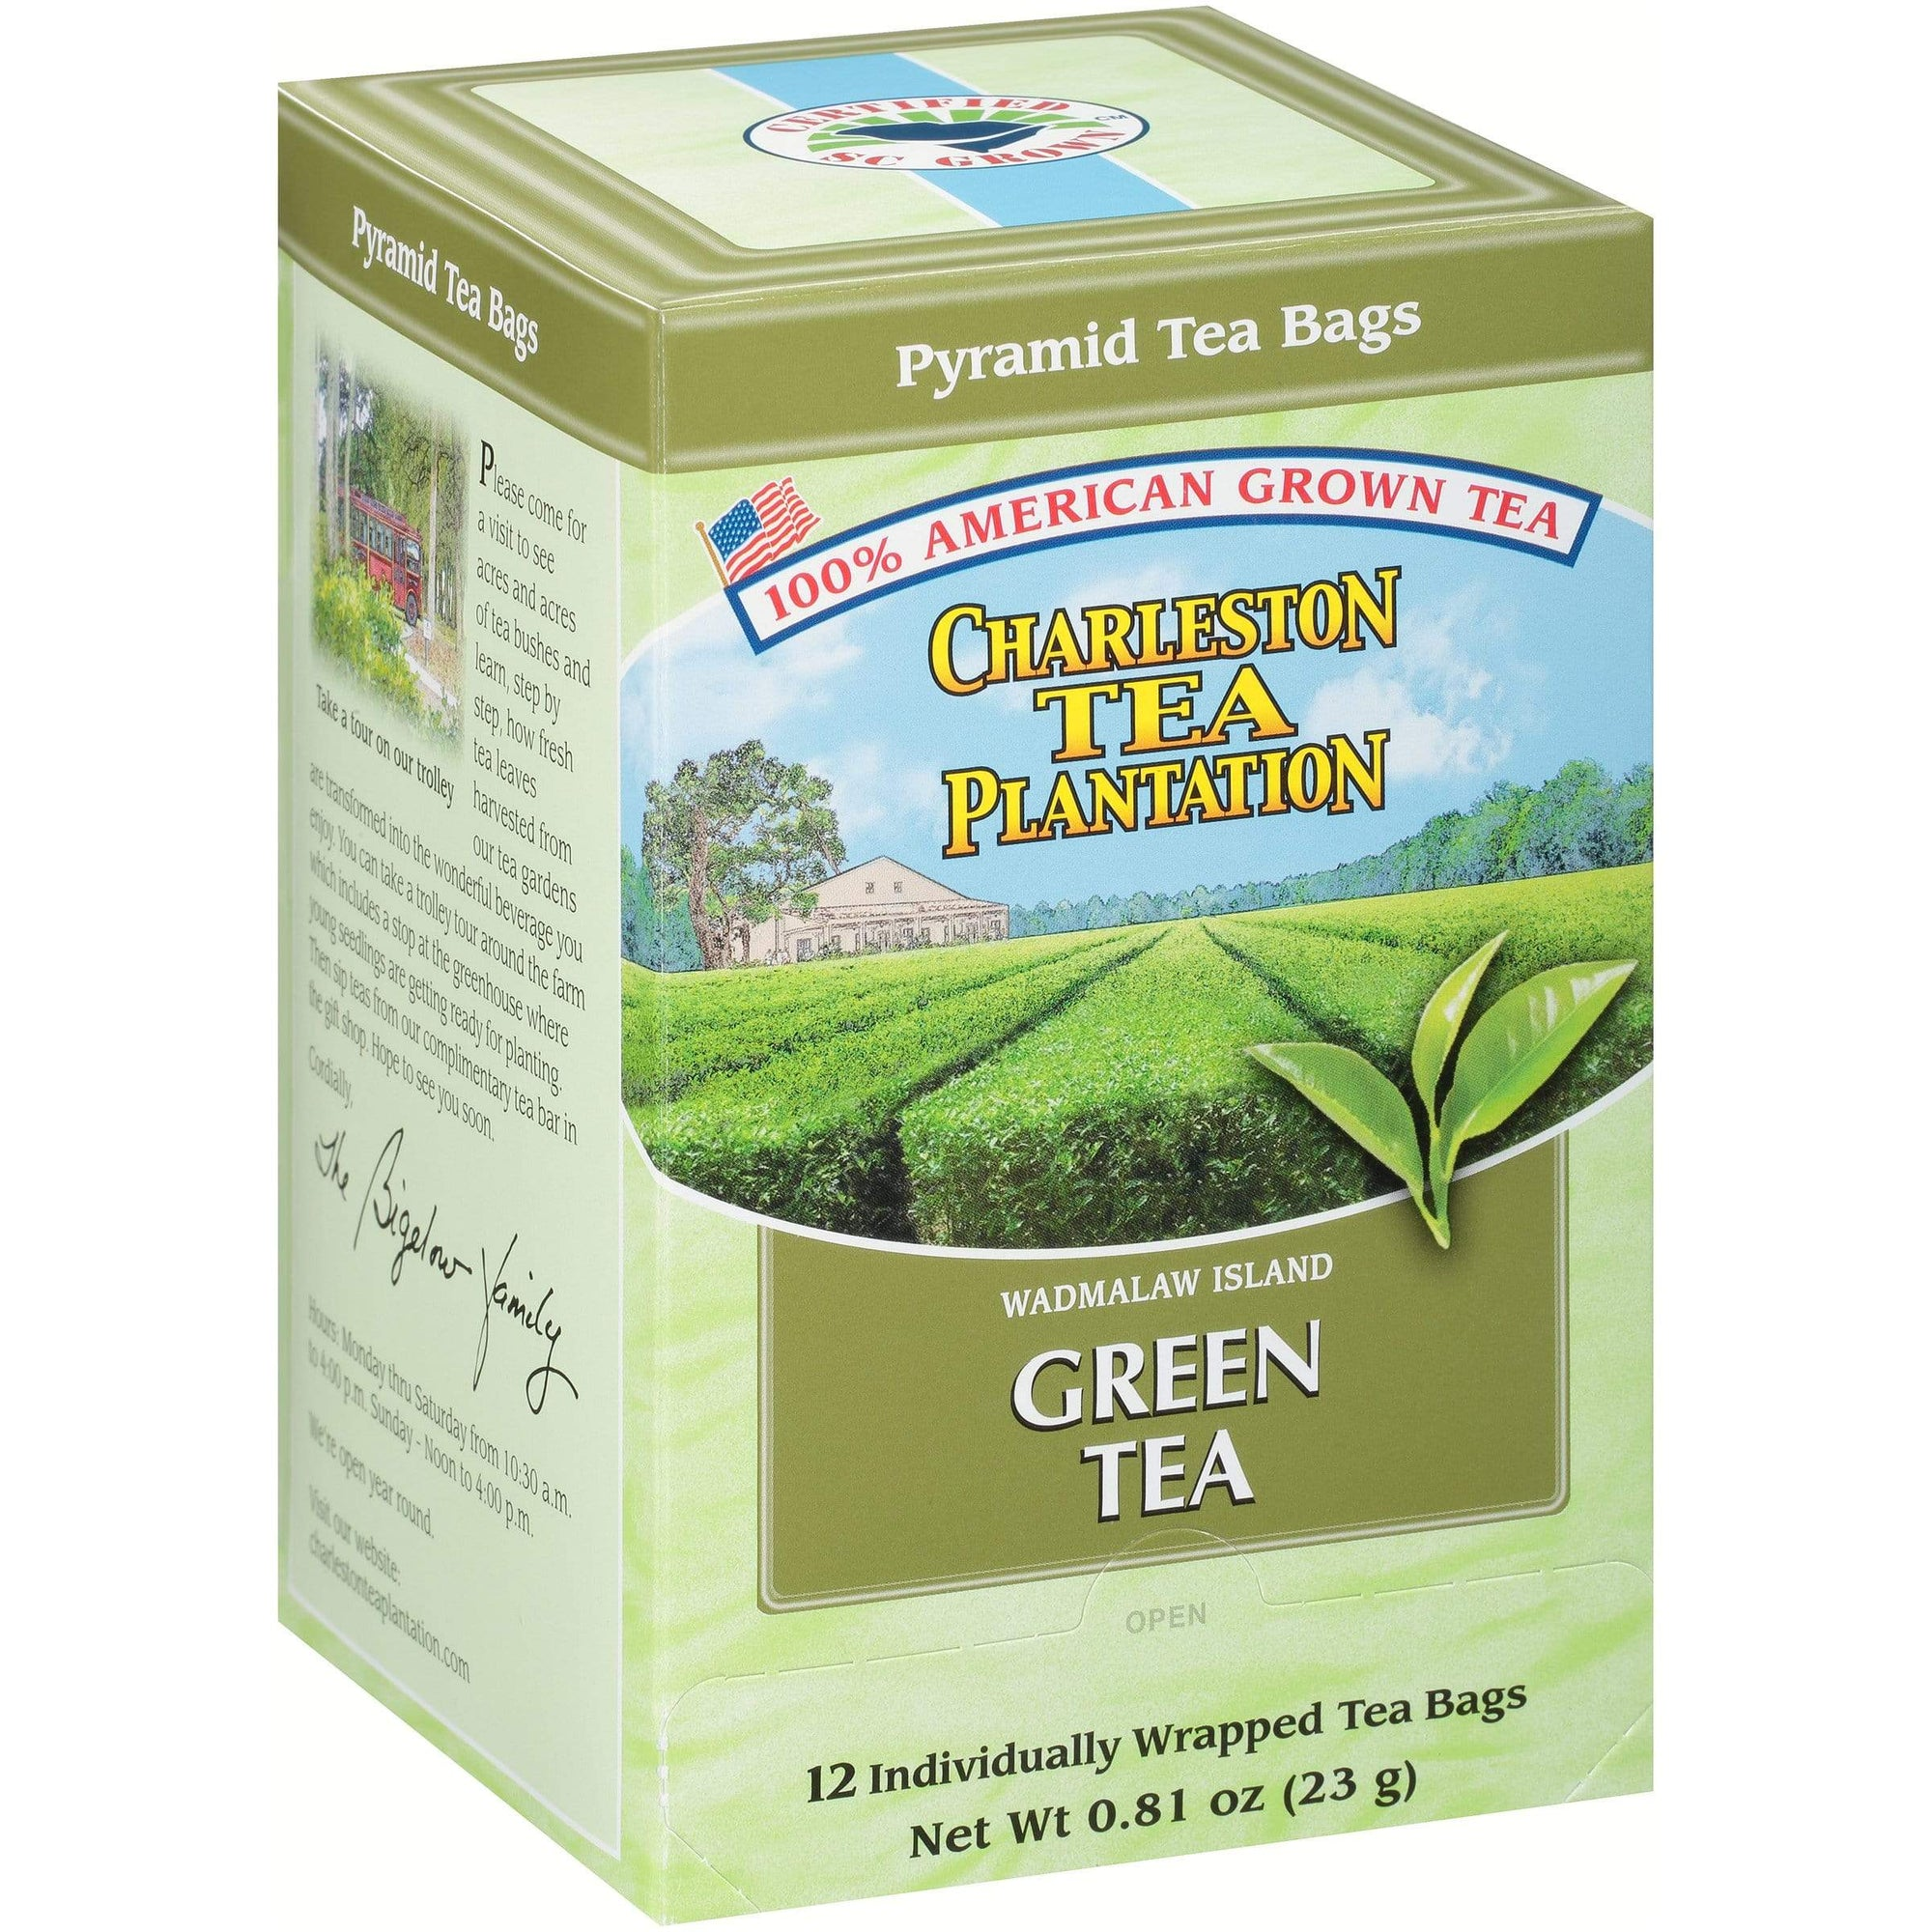 Charleston Tea Plantation Wadmalaw Green Tea (100% American)-VIVA Scandinavia